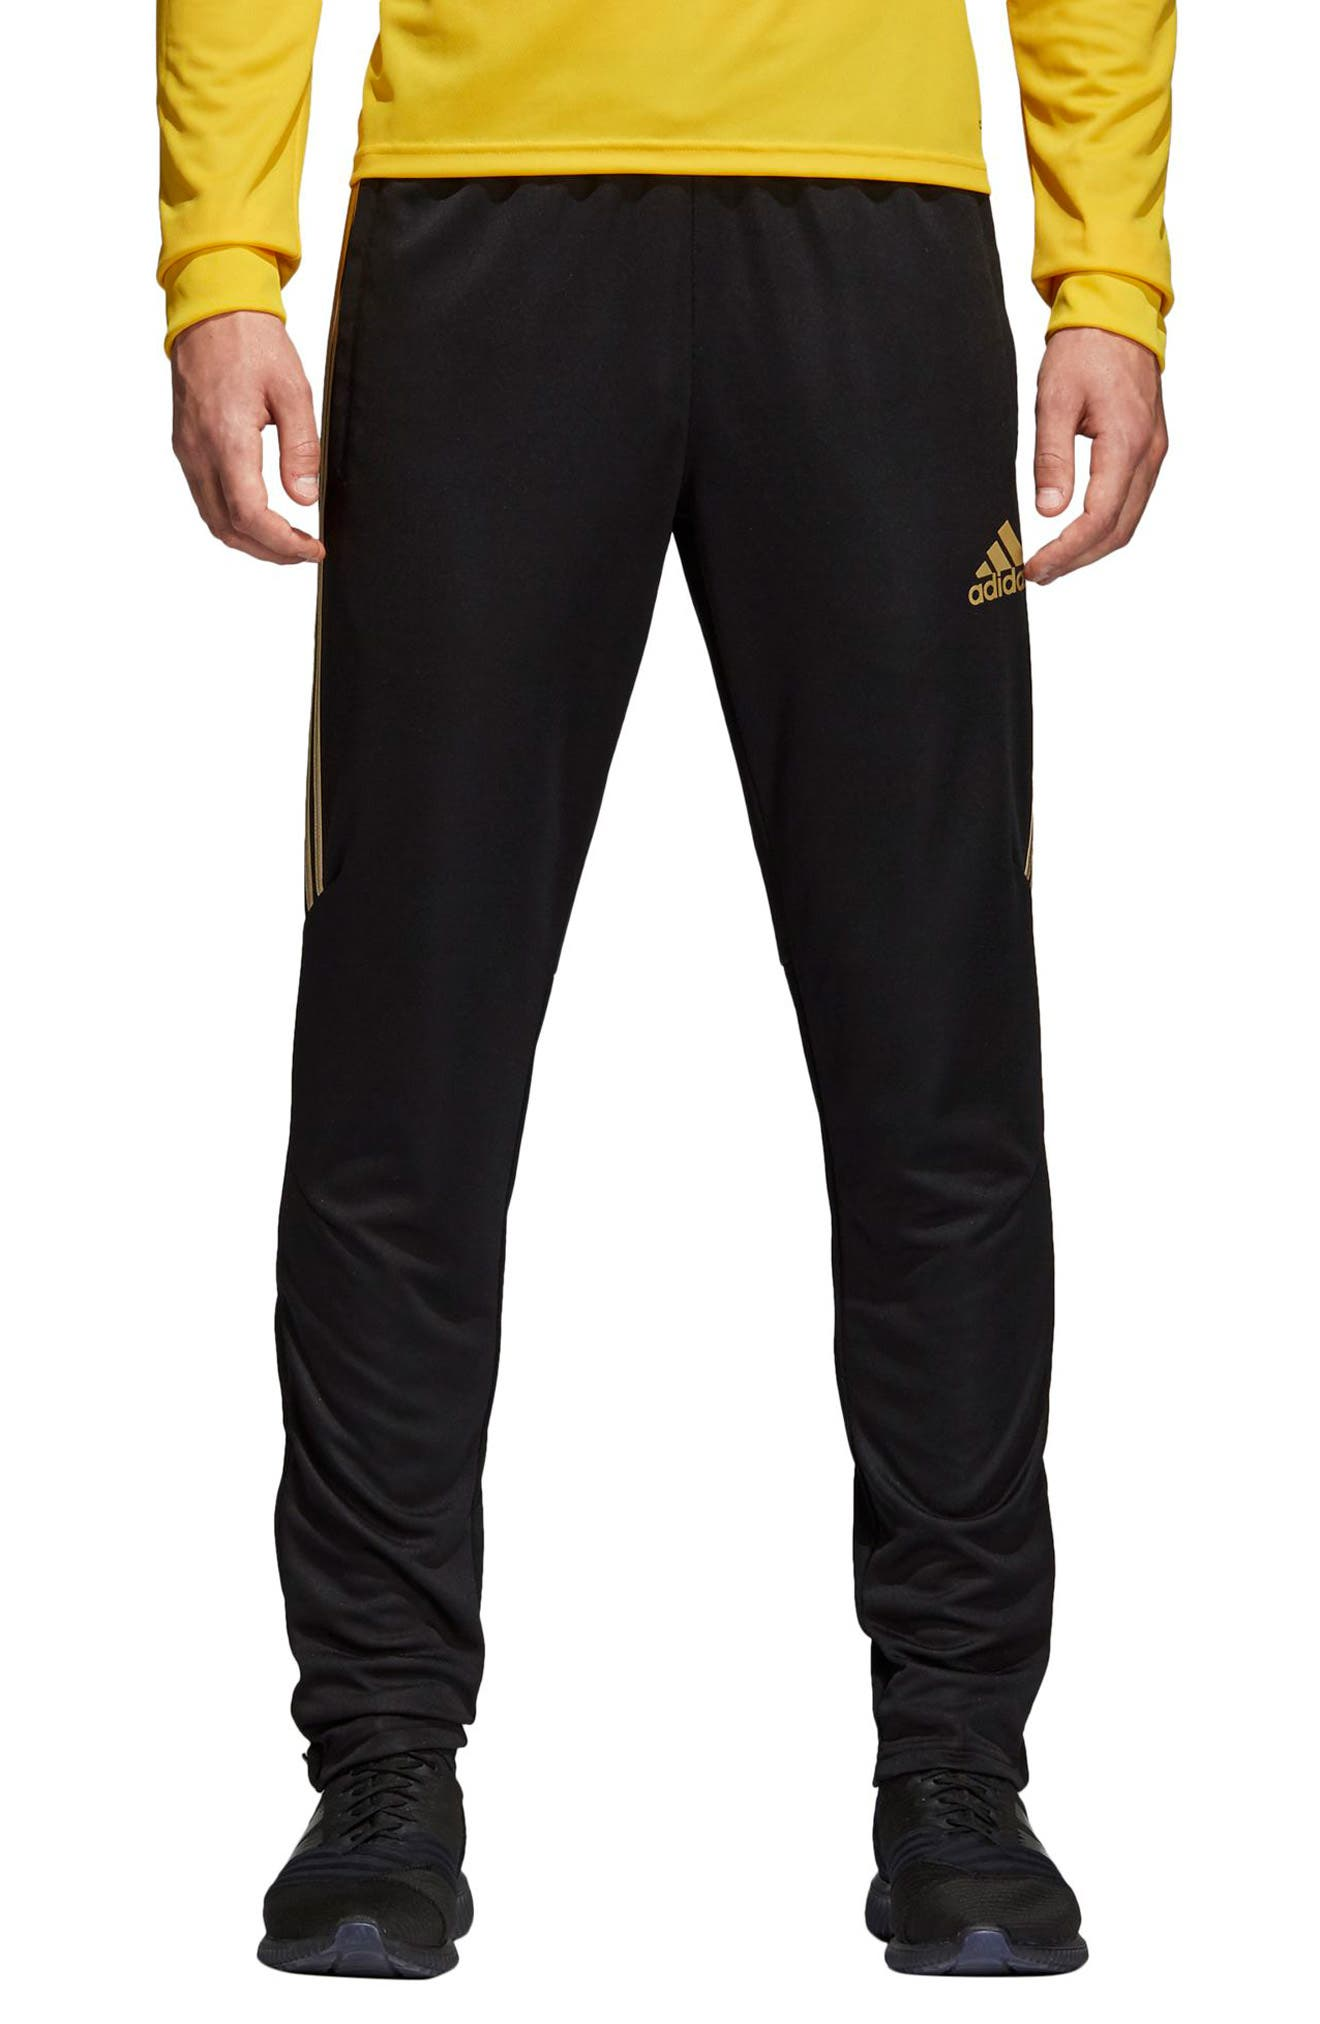 Adidas Men's Tiro Metallic Soccer Pants in BlackGold